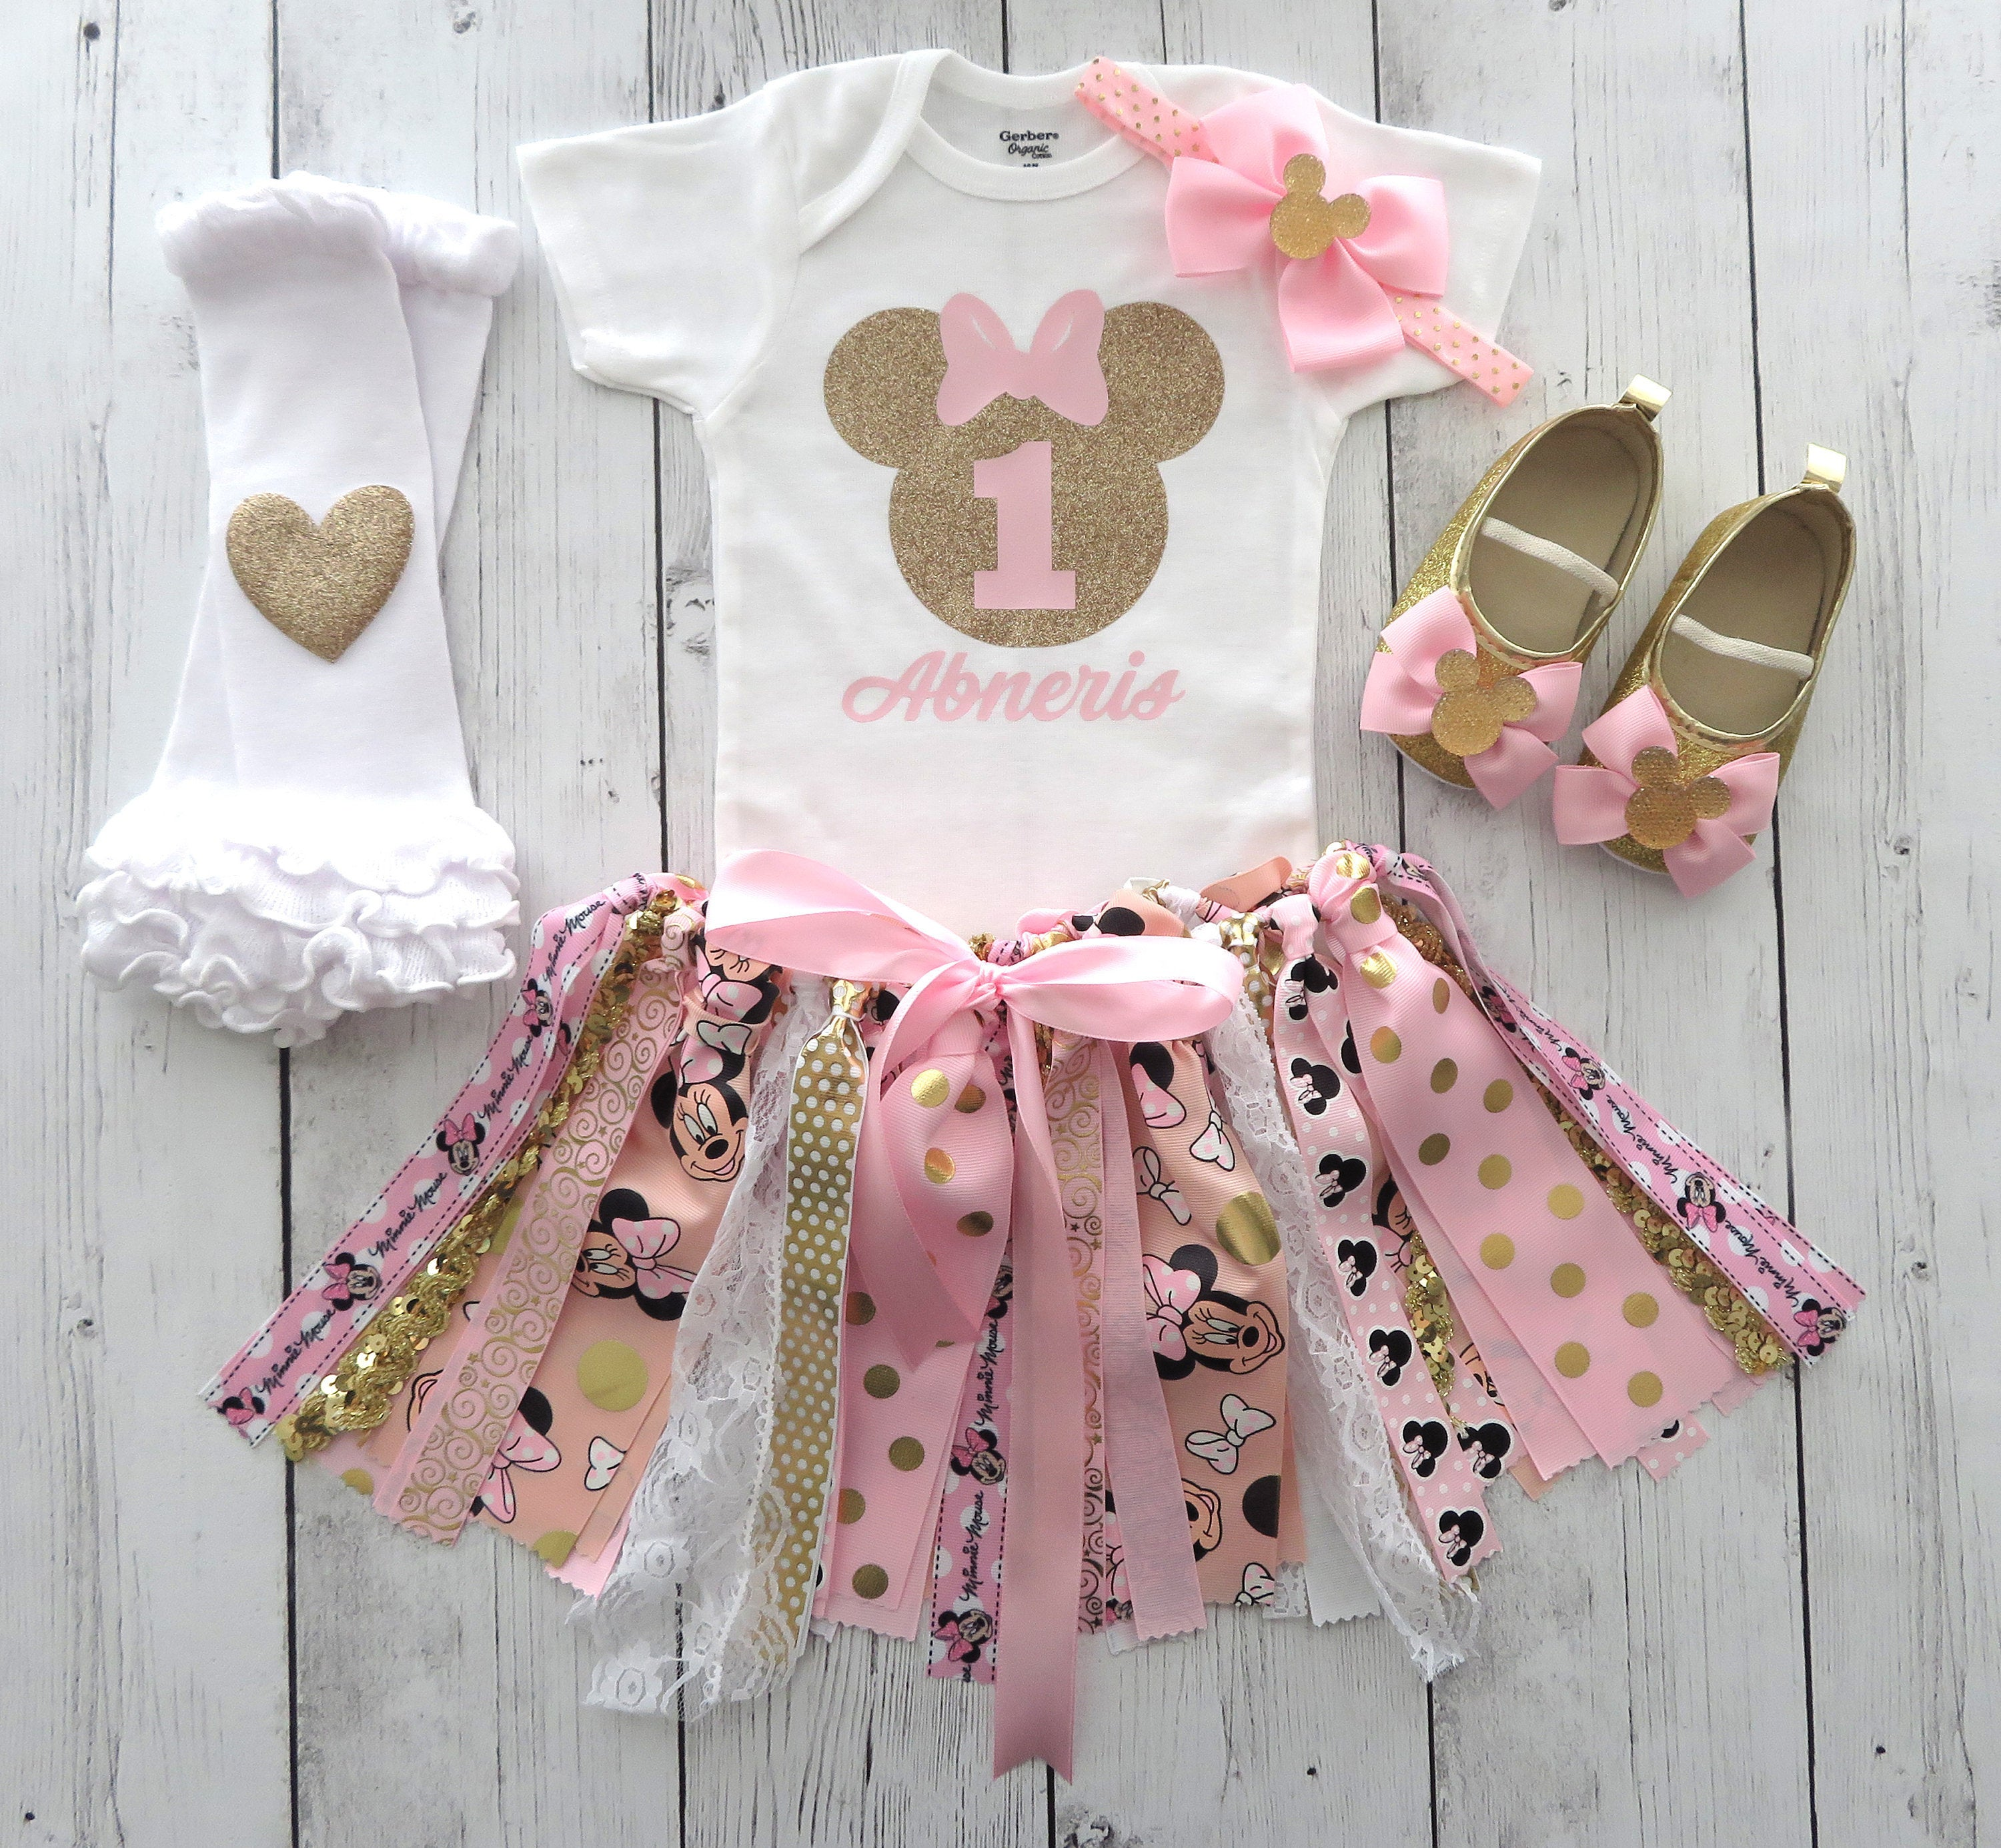 Minnie Mouse First Birthday Outfit with Tutu, Headband and Shoes in Pink and Gold - Minnie 1st bday outfit girl, minnie mouse tutu pink gold